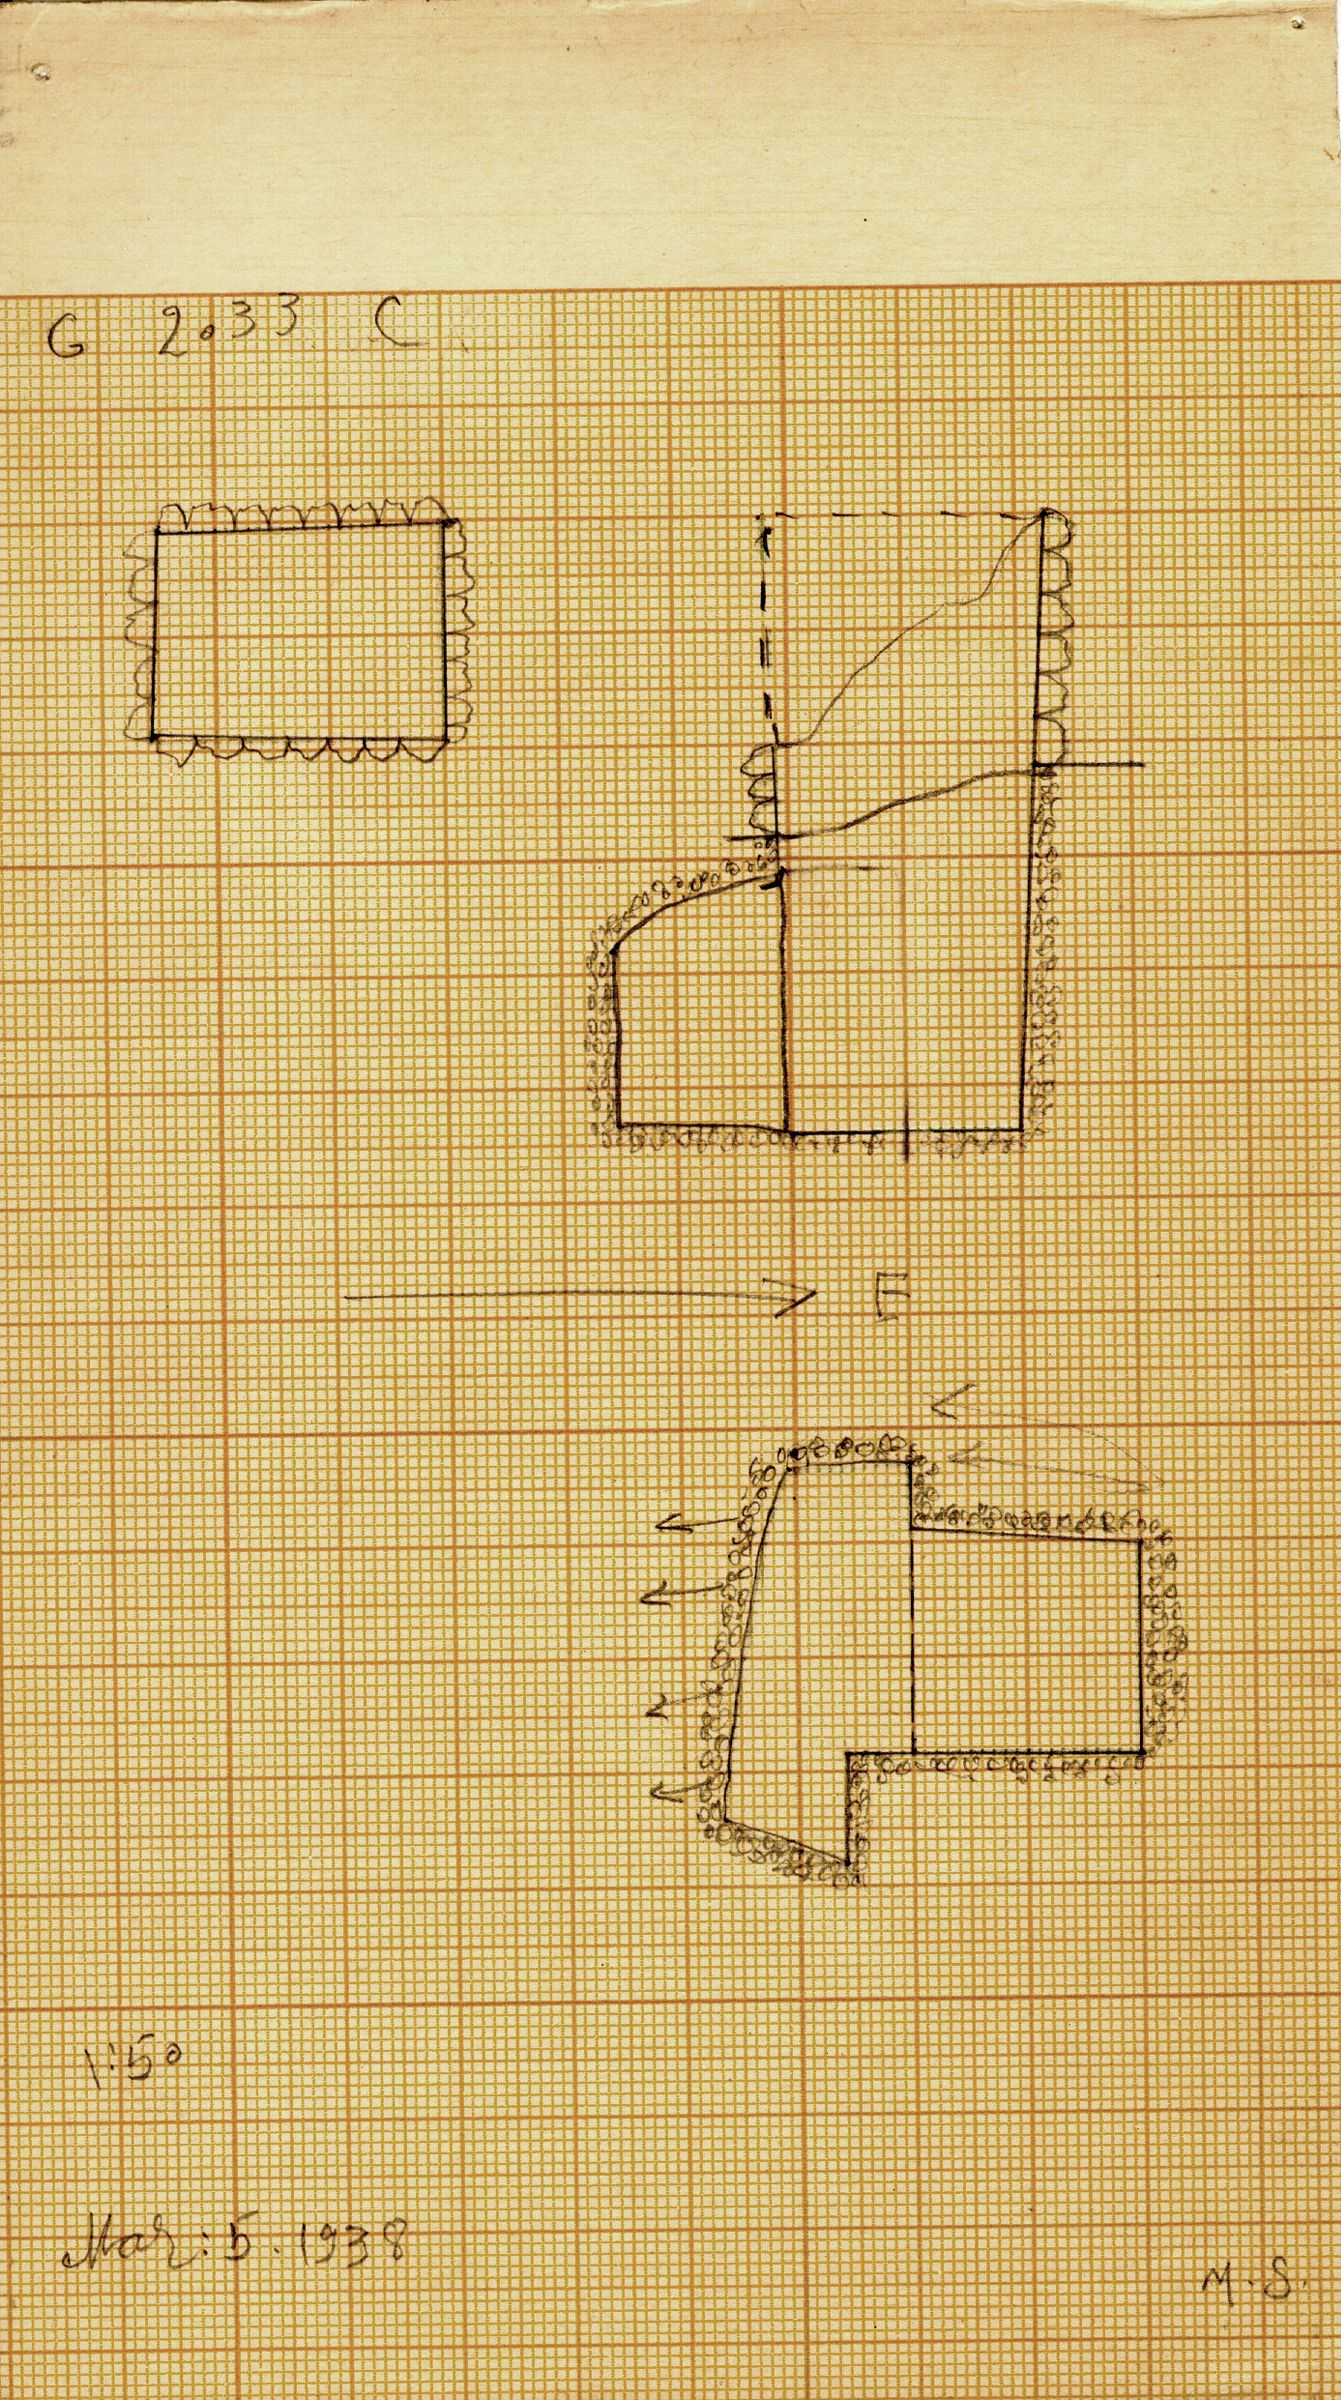 Maps and plans: G 2033, Shaft C